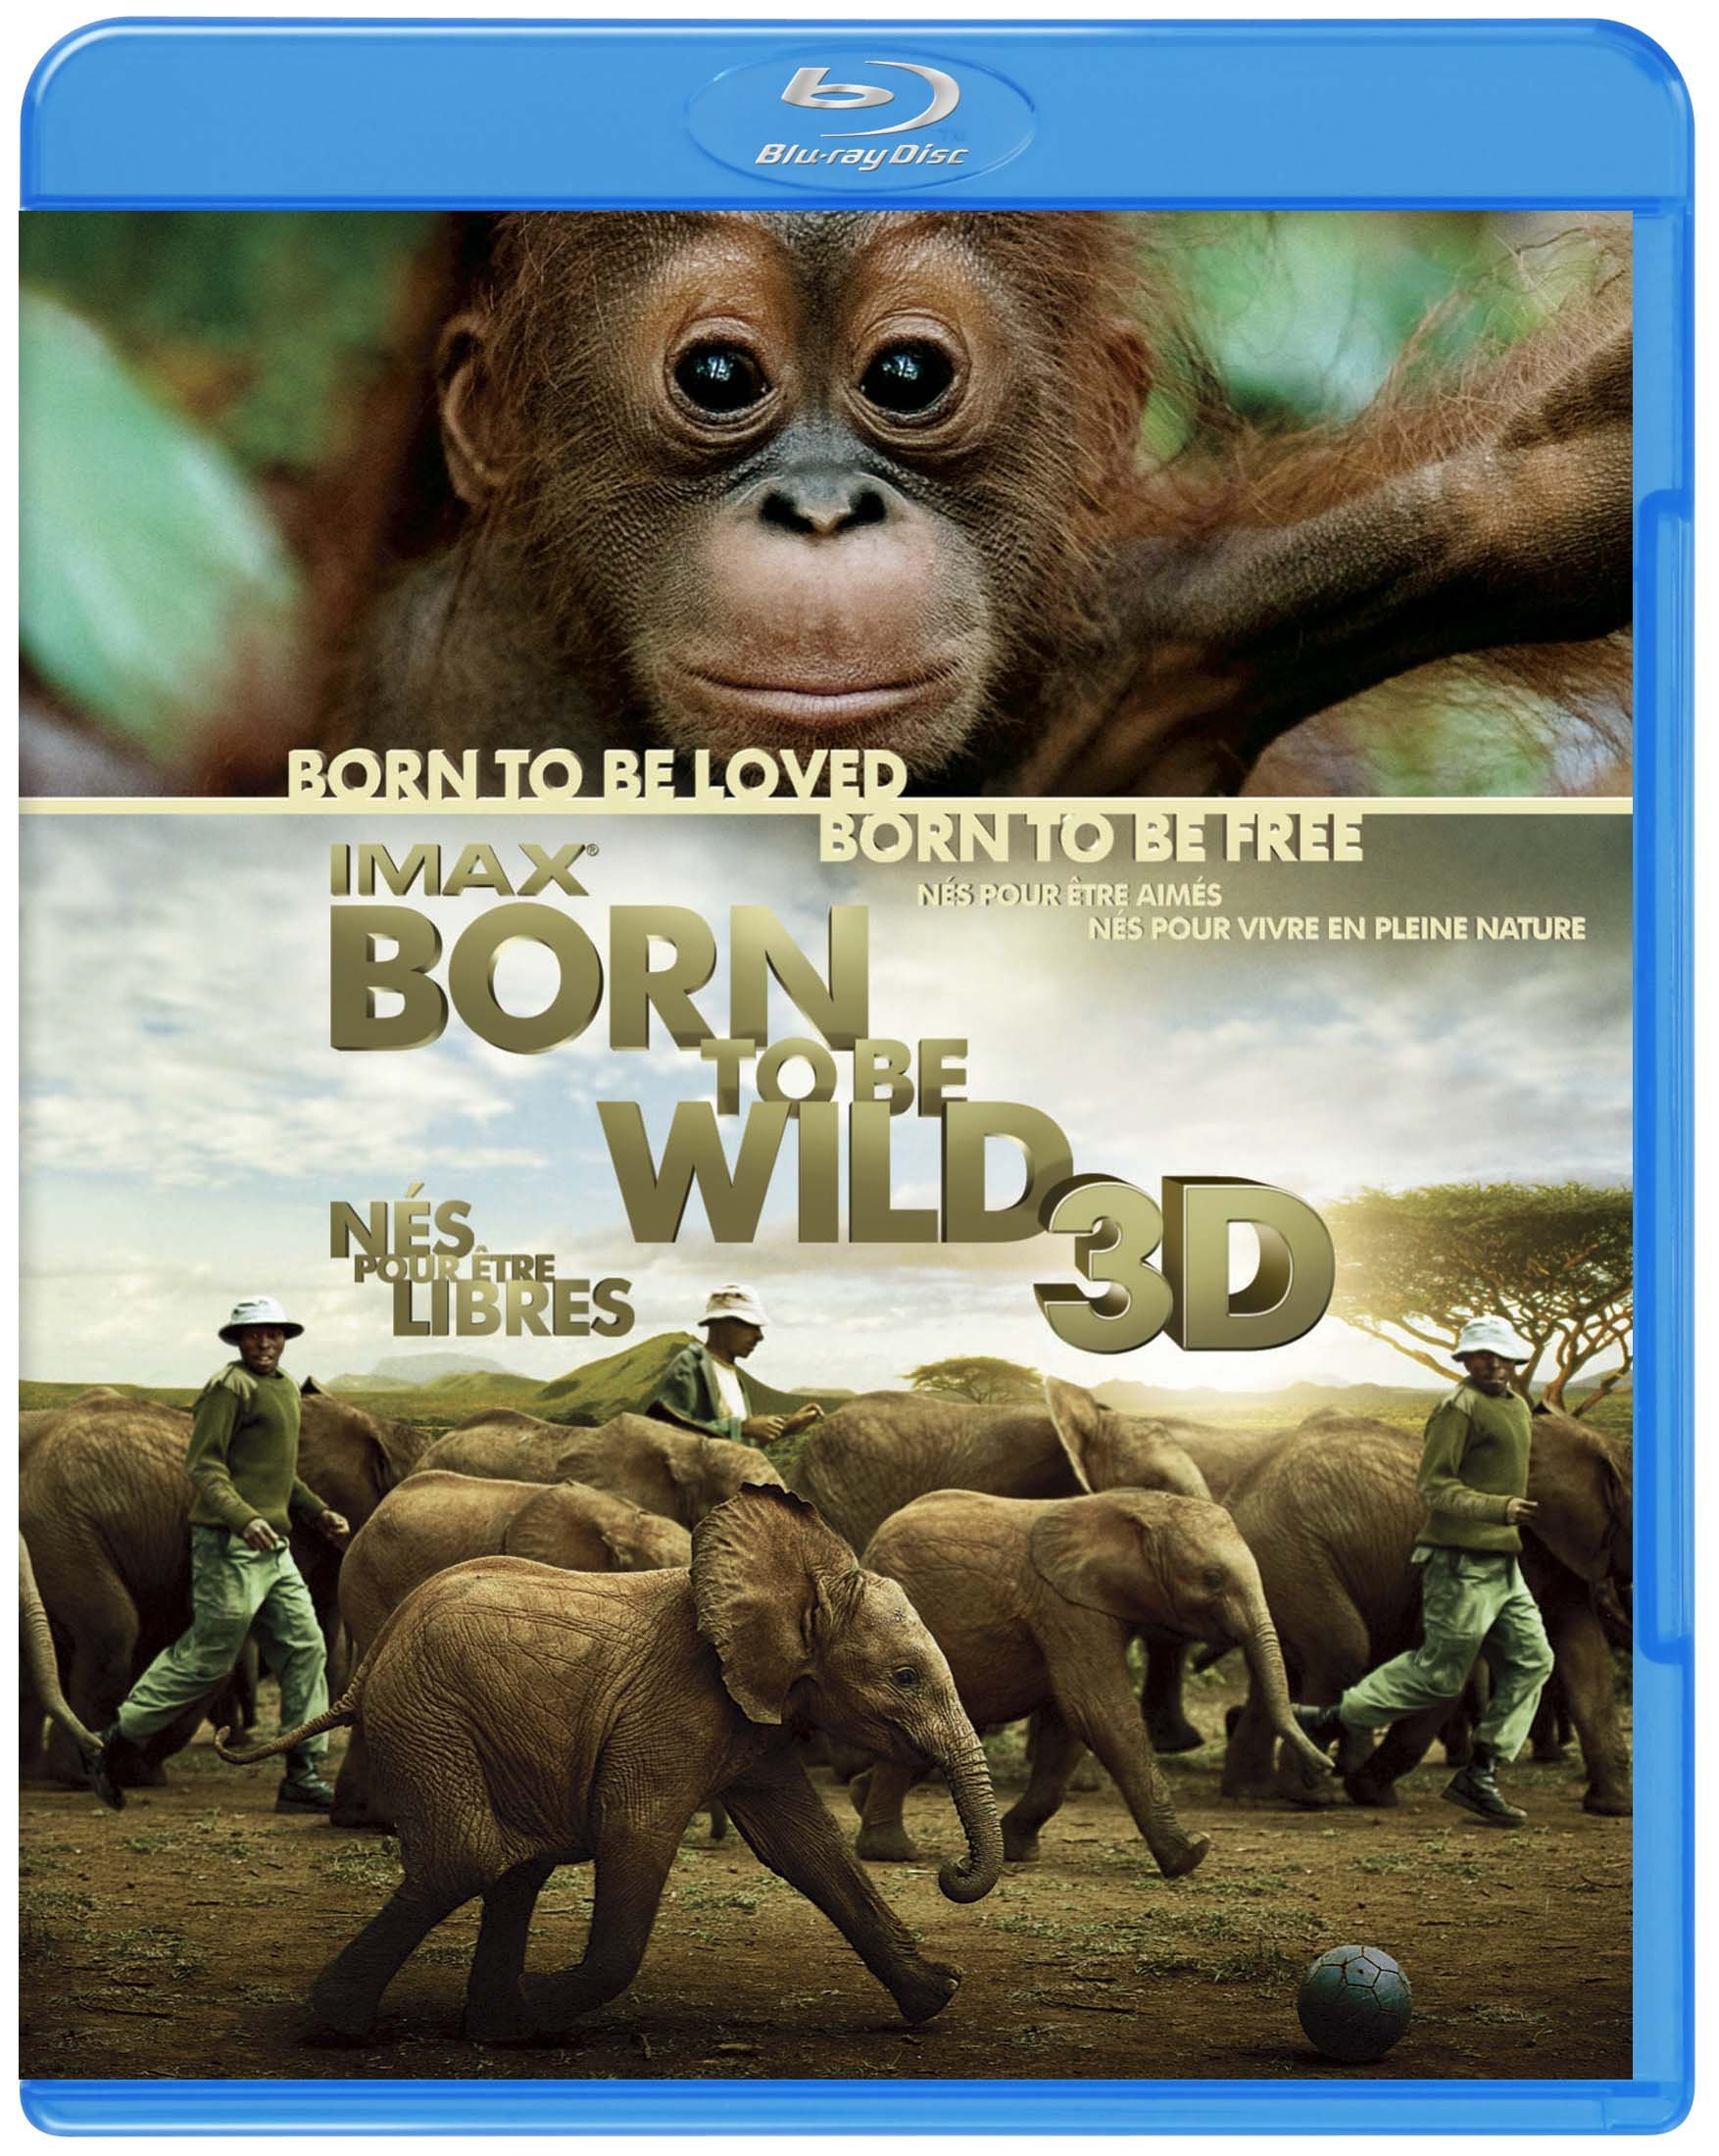 TV Series - Live In The Wild Born To Be Wild 3D: Imax [Japan BD] 10003-68709